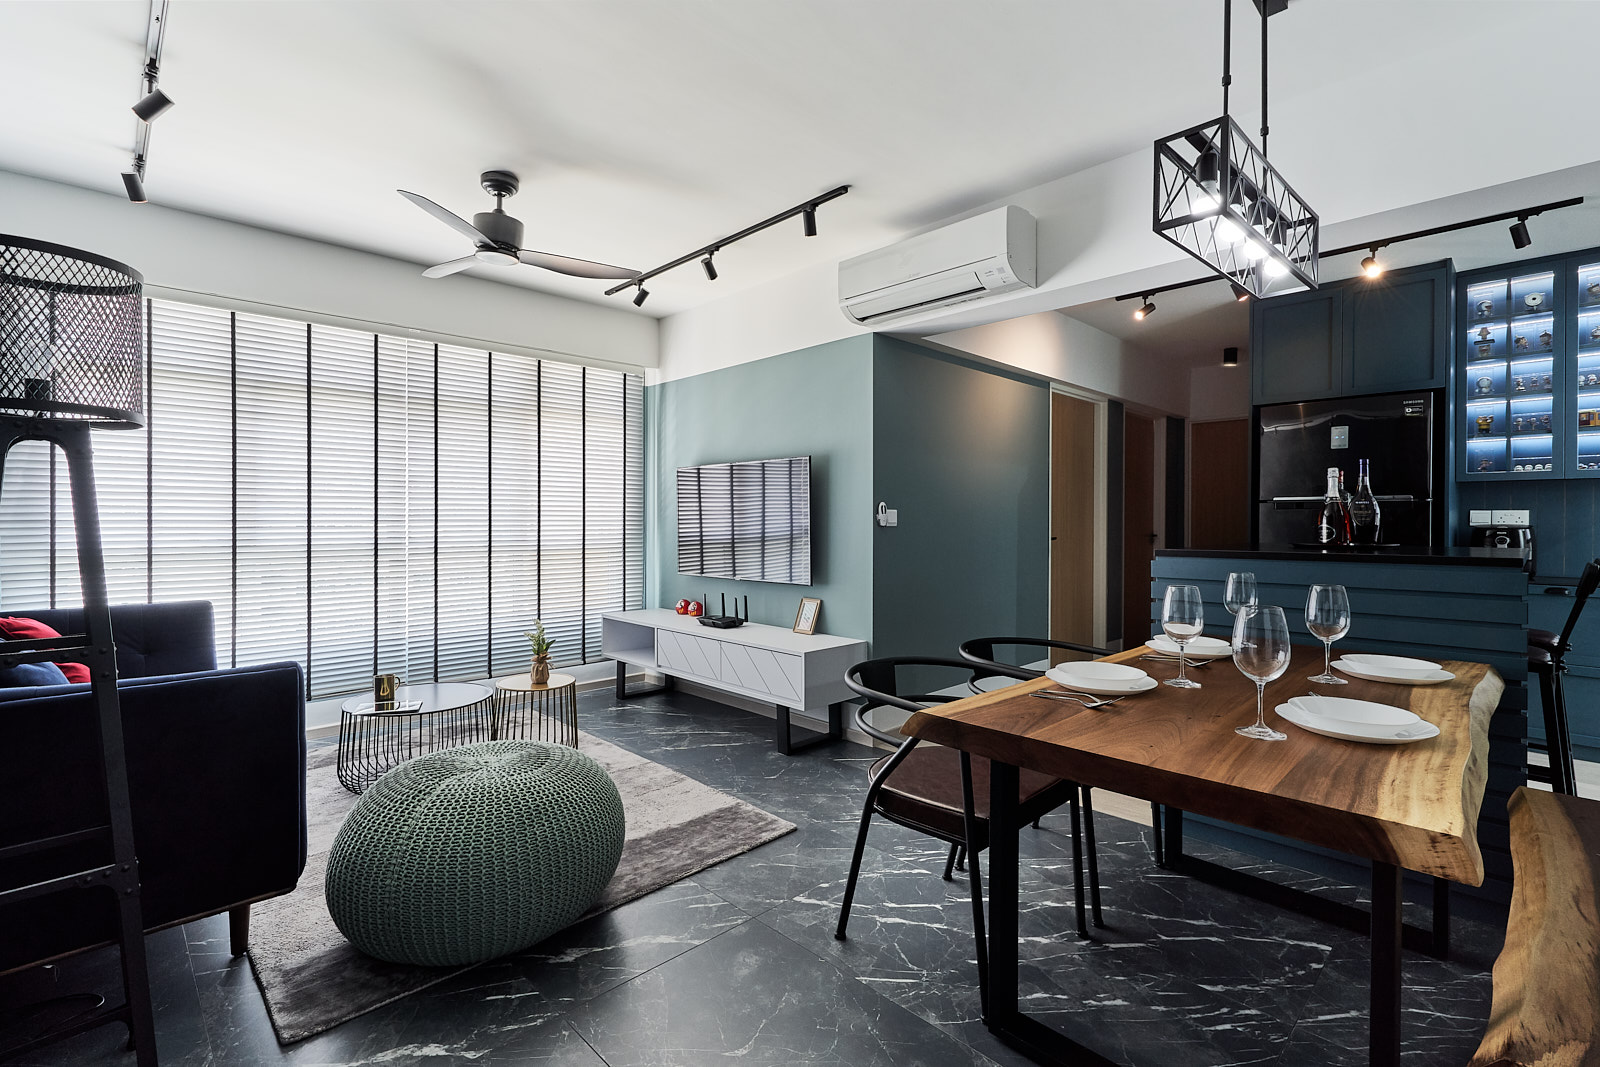 Best Interior Design Firms for your HDB renovation in Singapore - Charlotte's Company